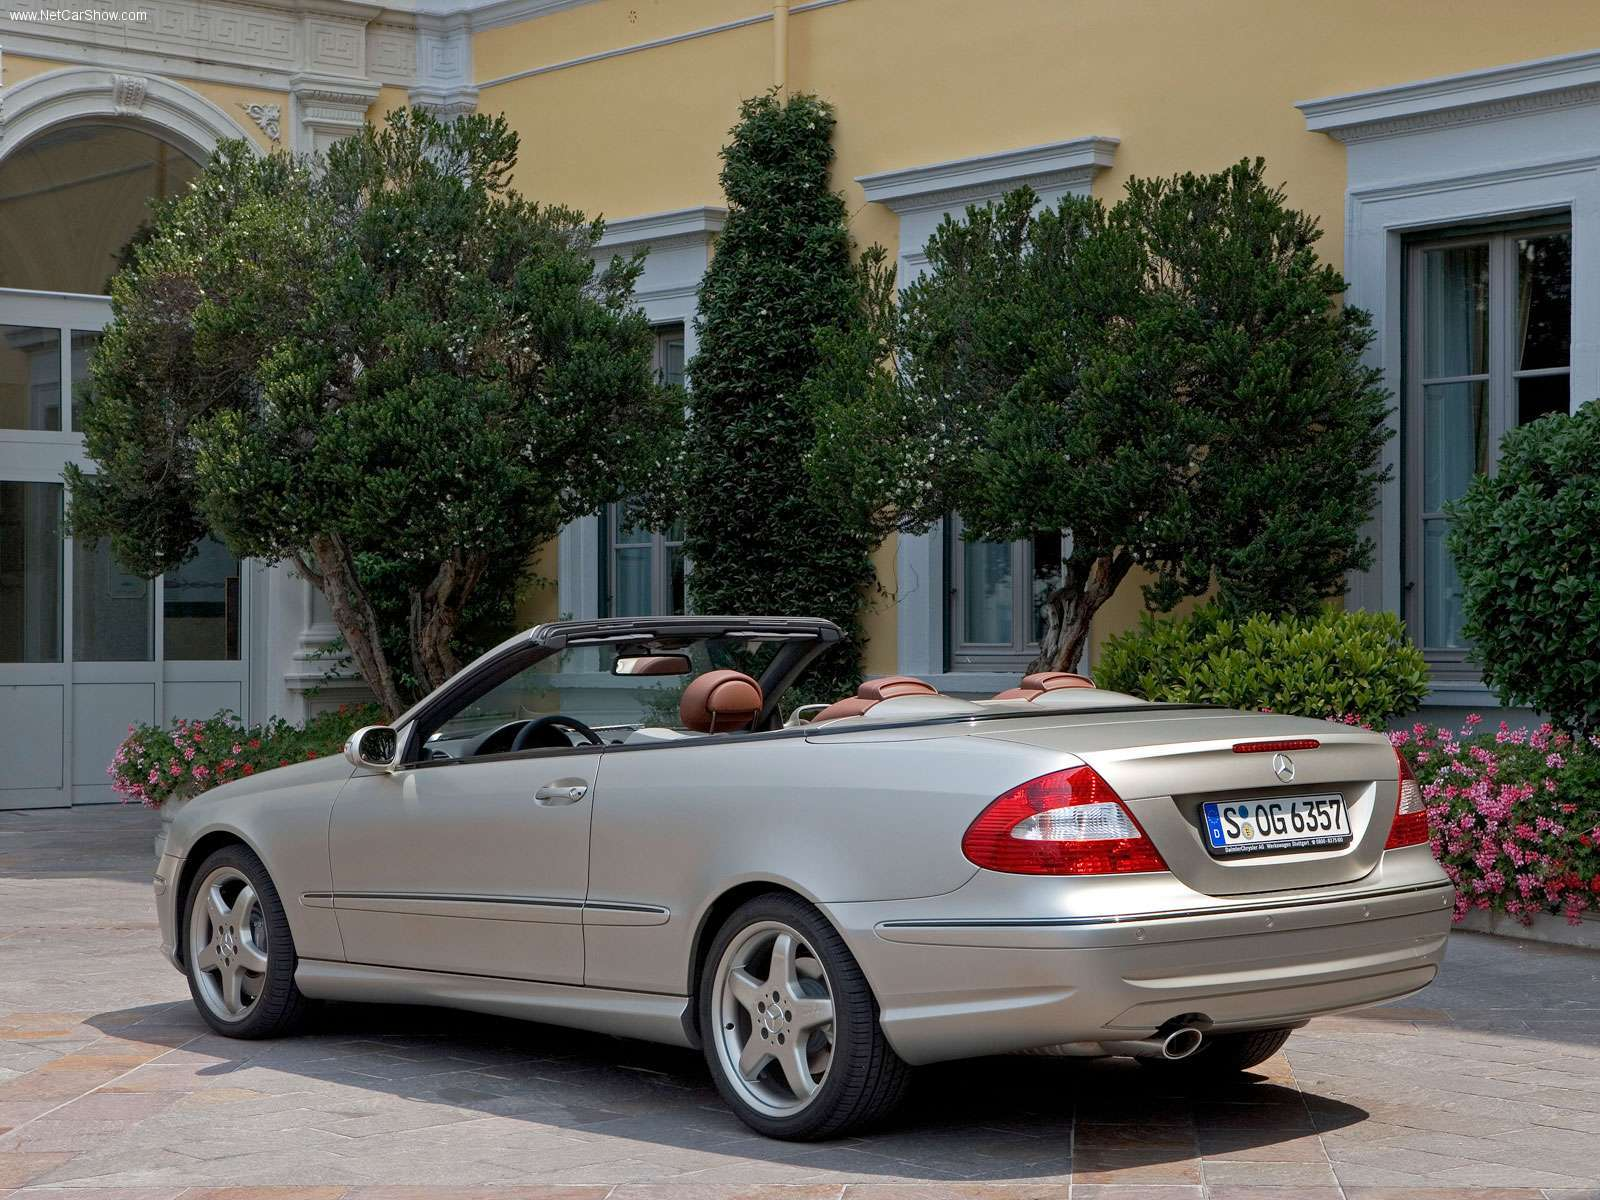 2005 mercedes-benz clk-class - information and photos - zombiedrive